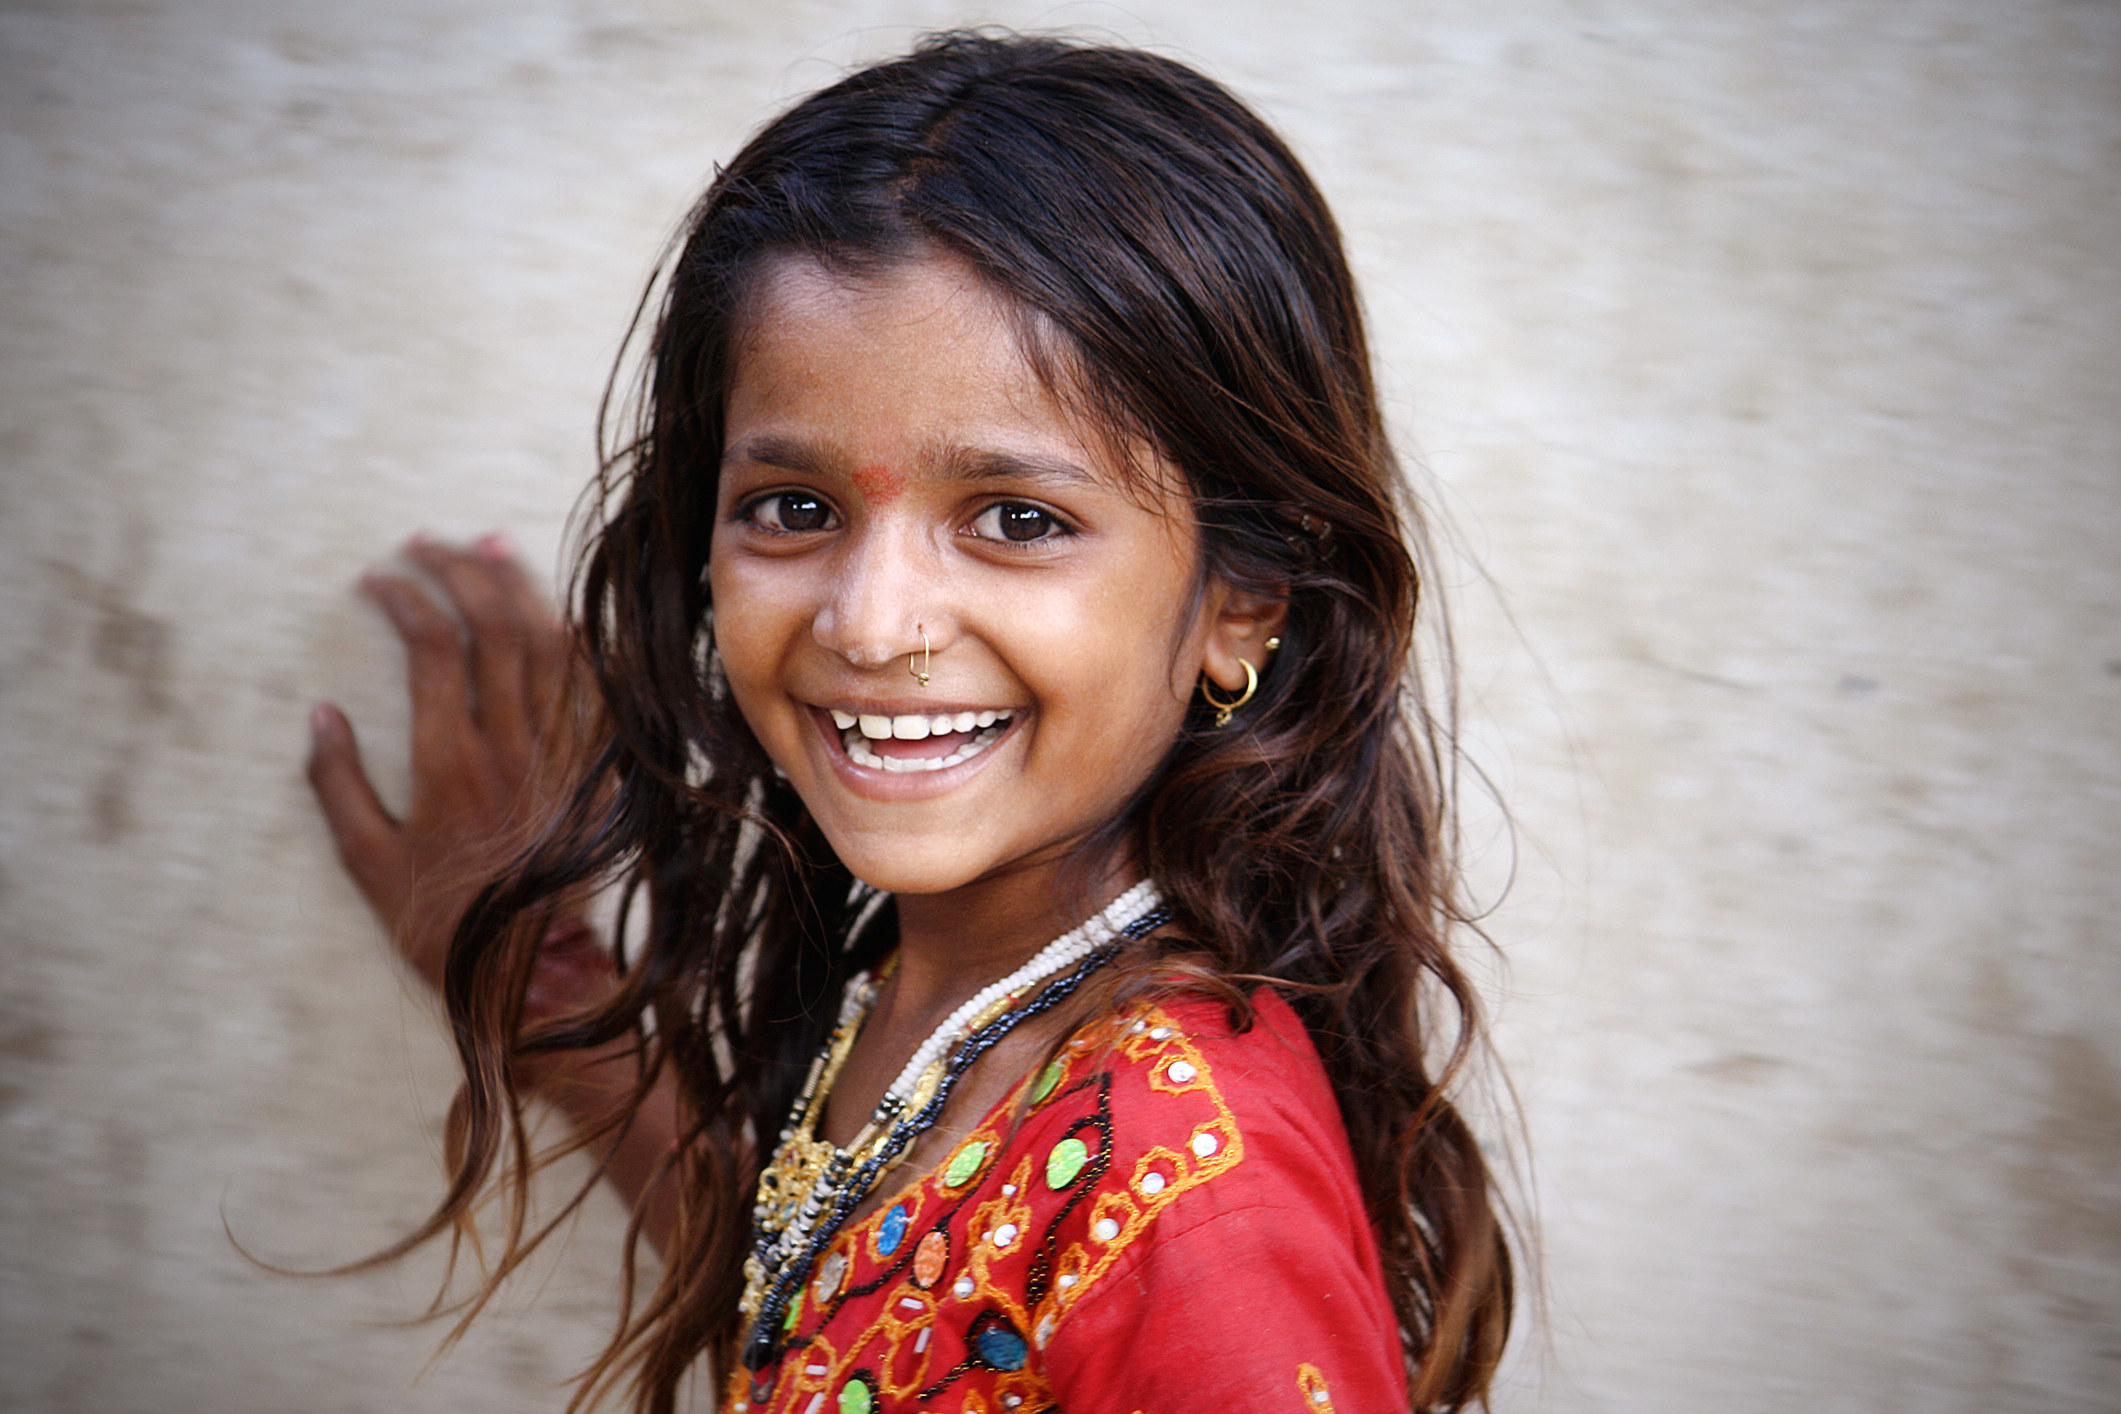 An Indian girl smiles